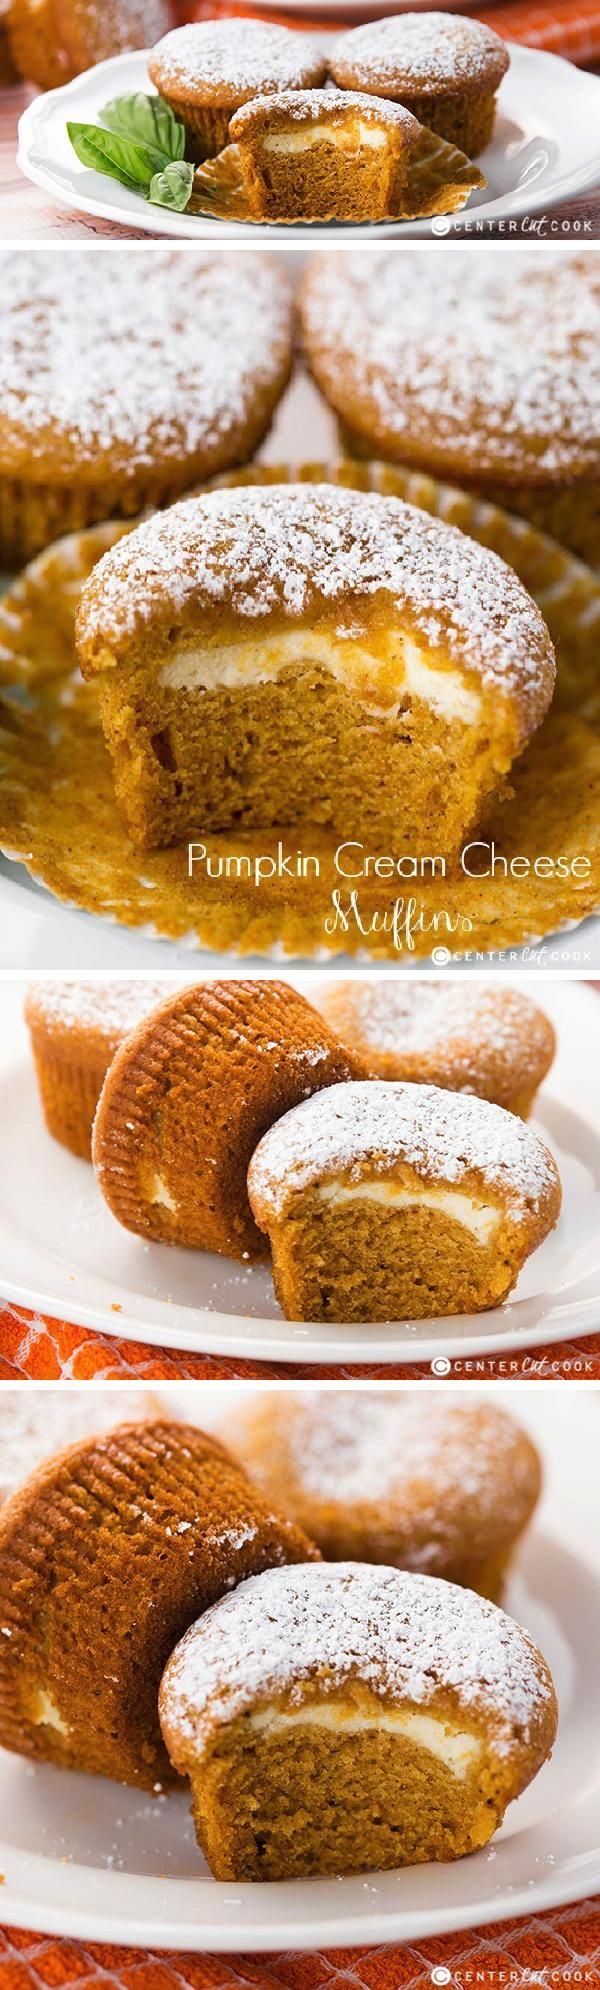 Easy Pumpkin Cream Cheese Muffins recipe inspired by the Starbucks version!